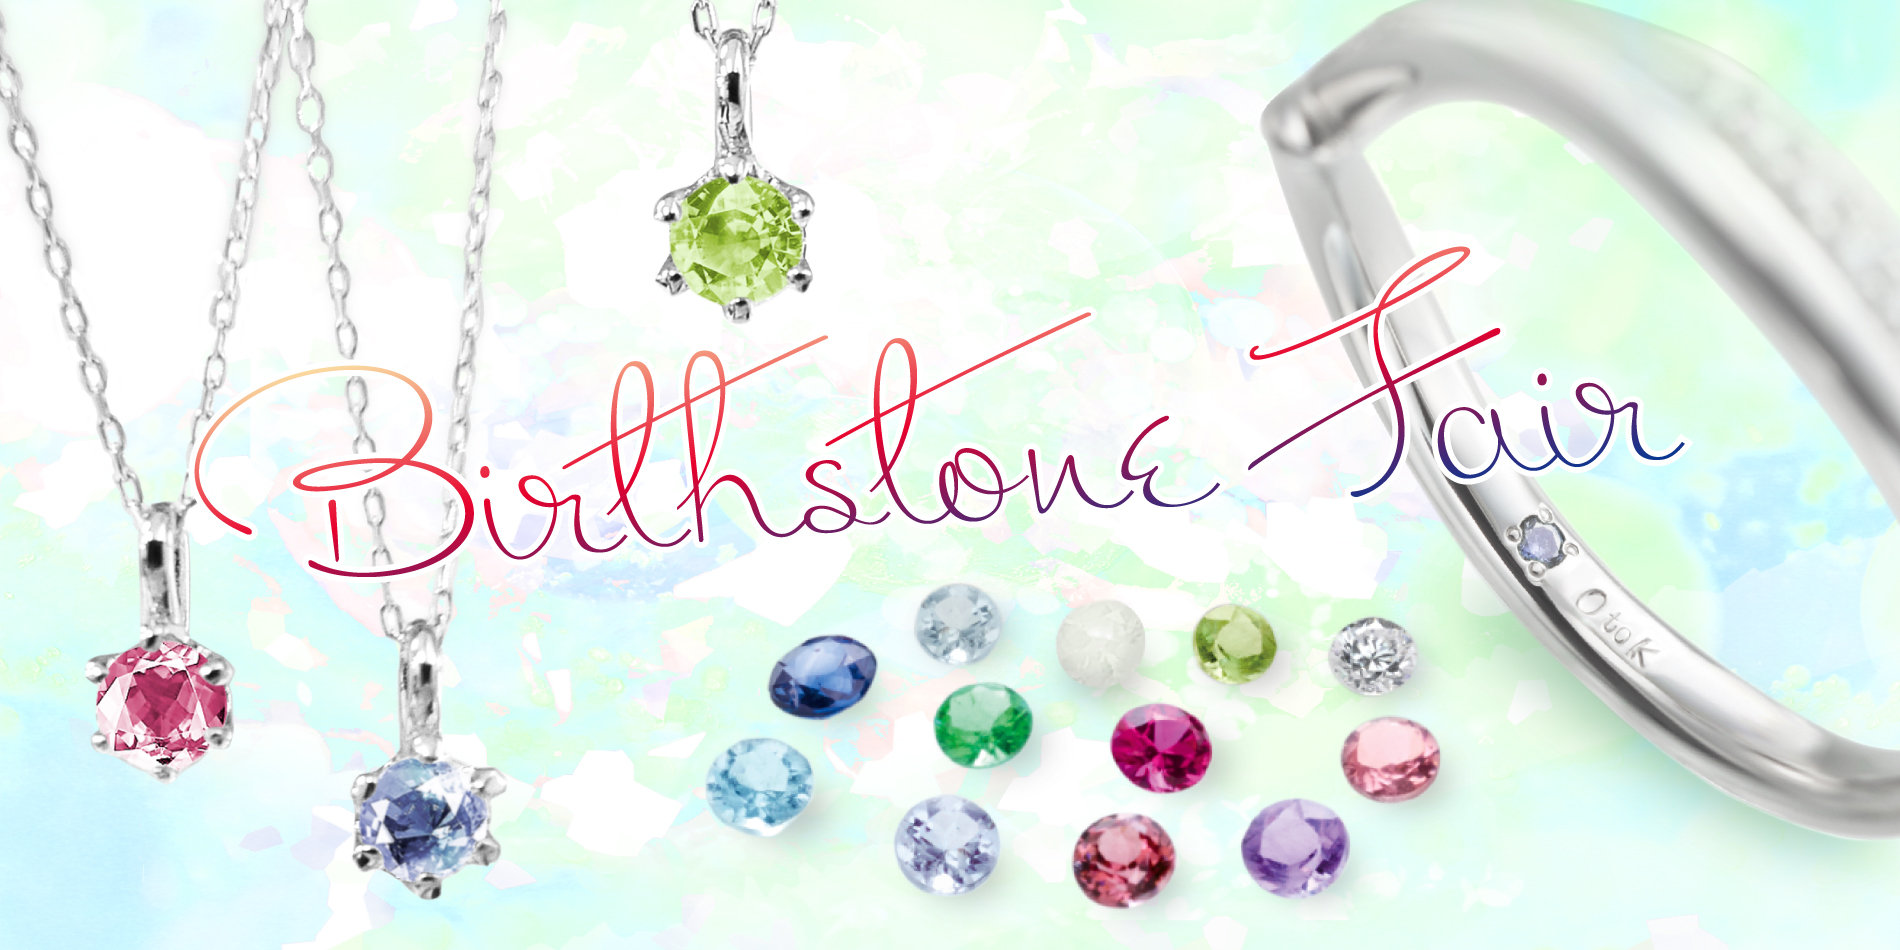 「Birthstone Fair」開催